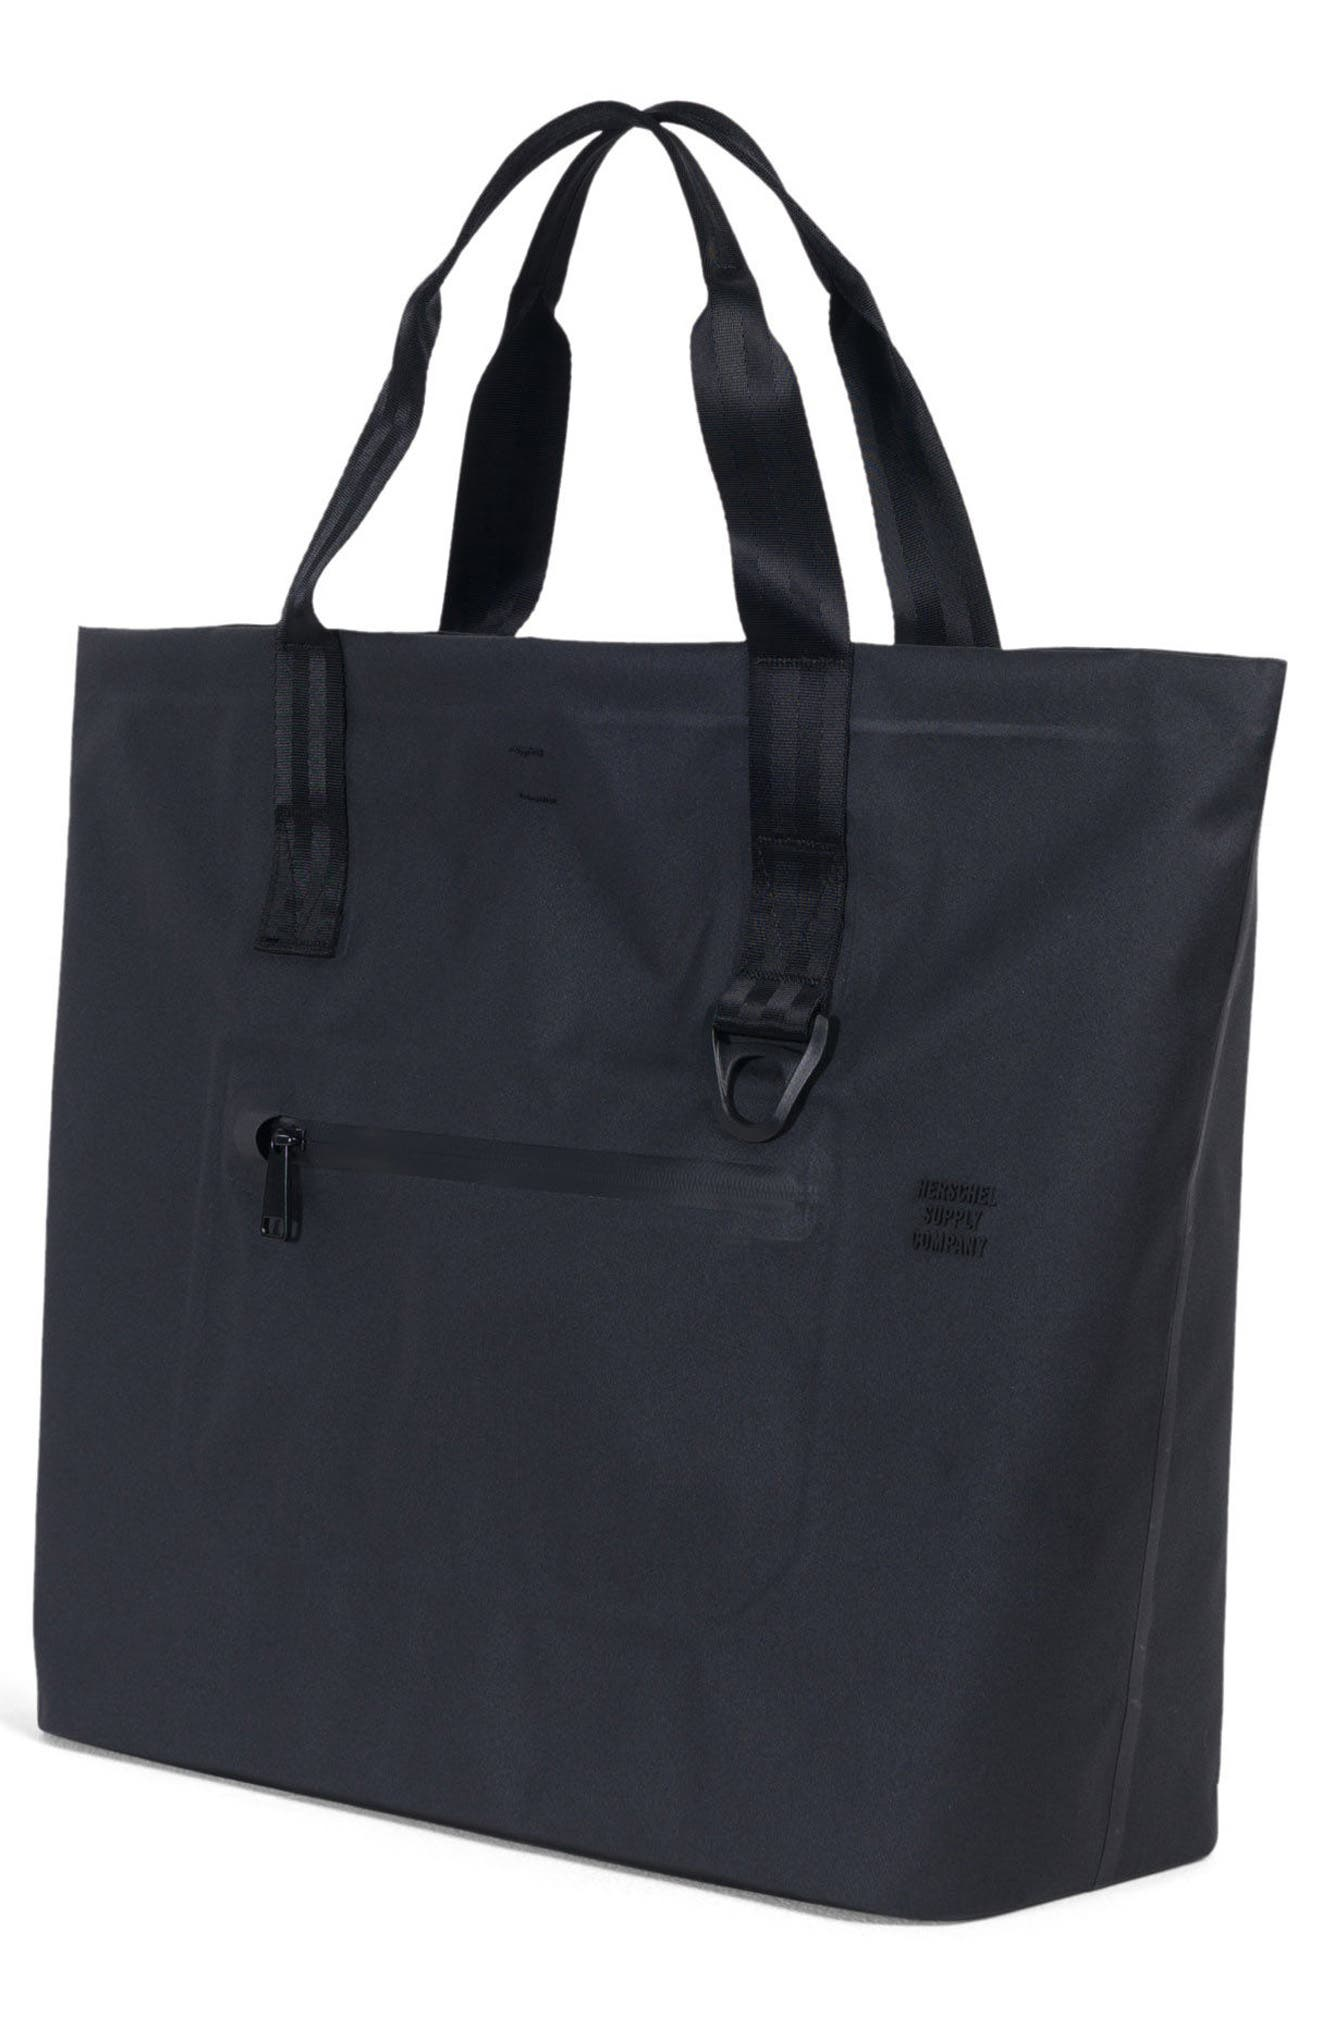 Tarpaulin Alexander Studio Tote Bag,                             Alternate thumbnail 3, color,                             BLACK